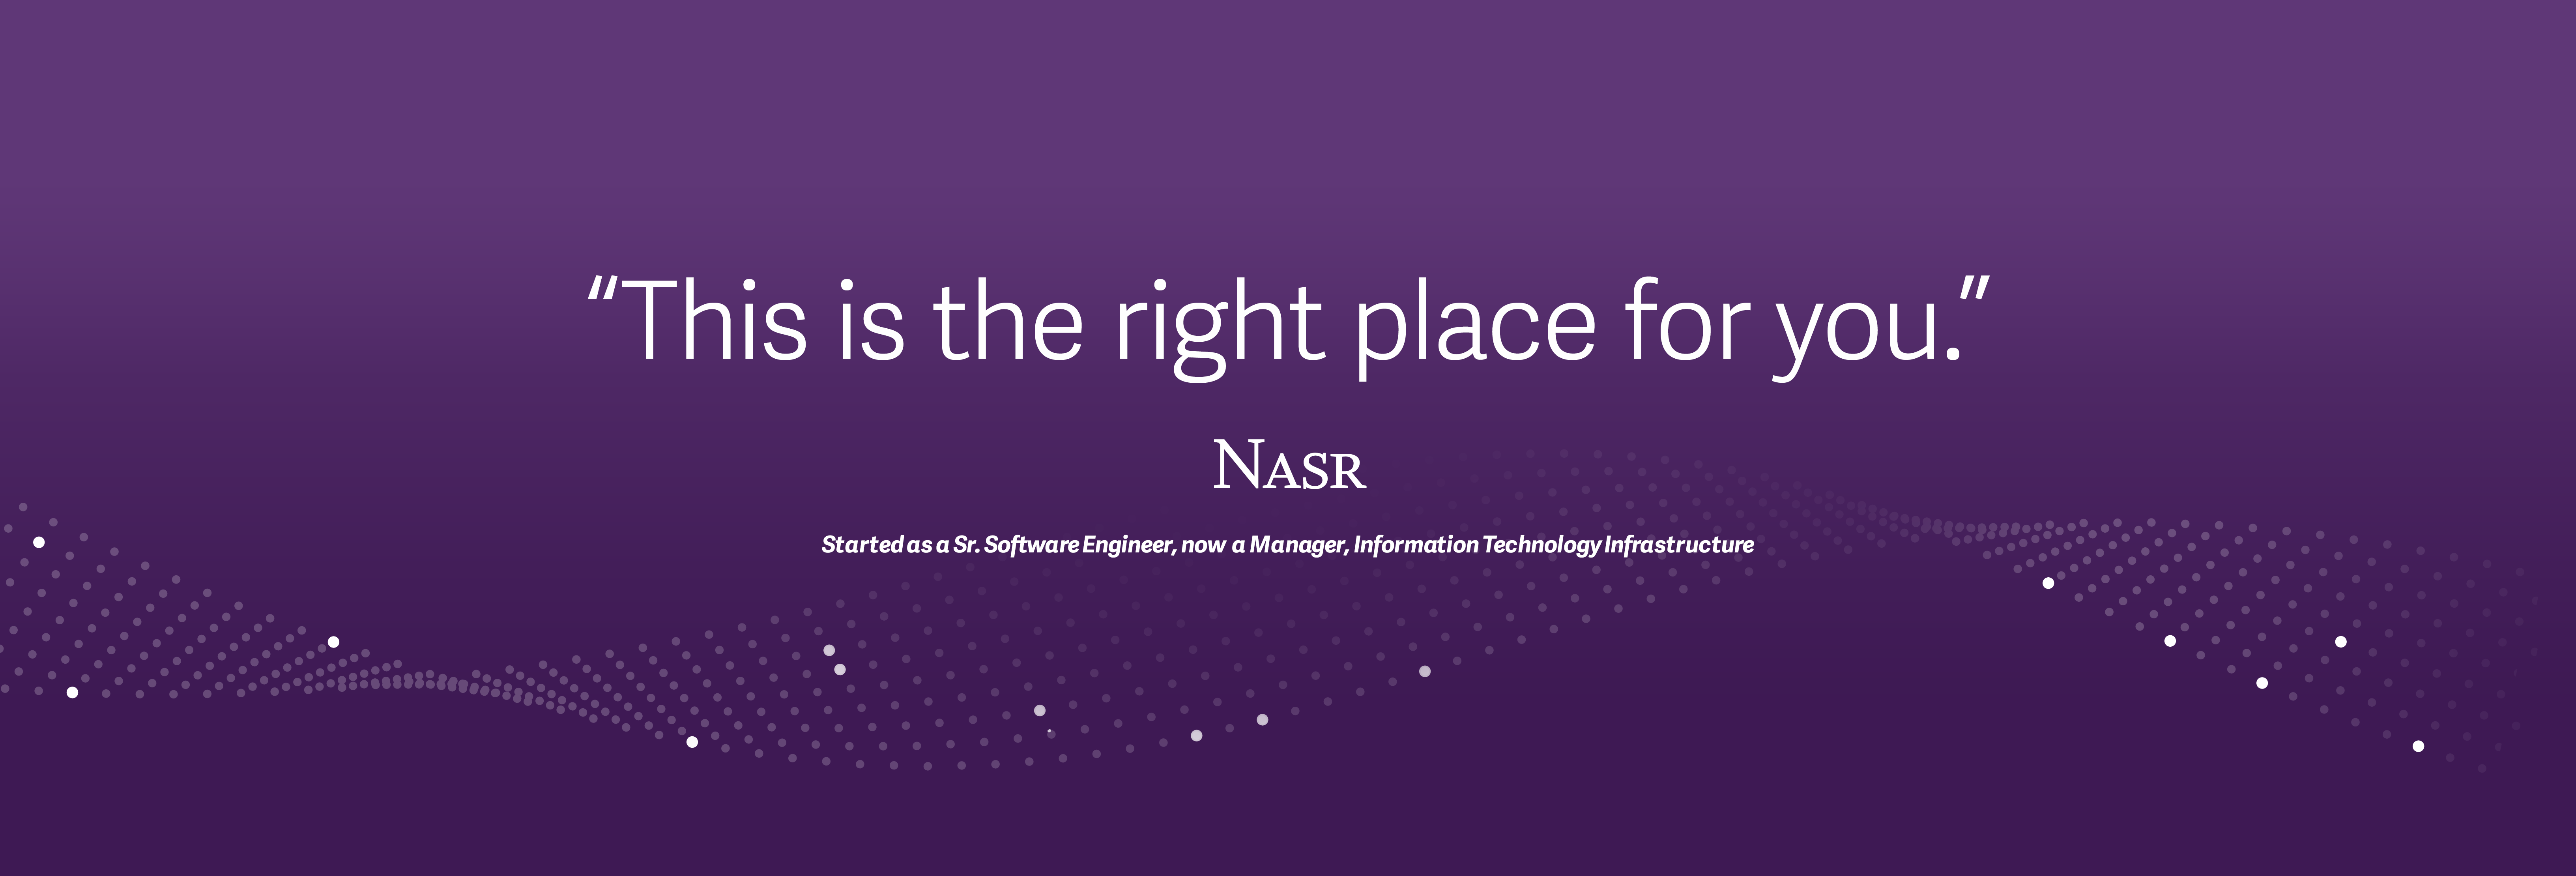 """This is the right place for you"", Nasr"